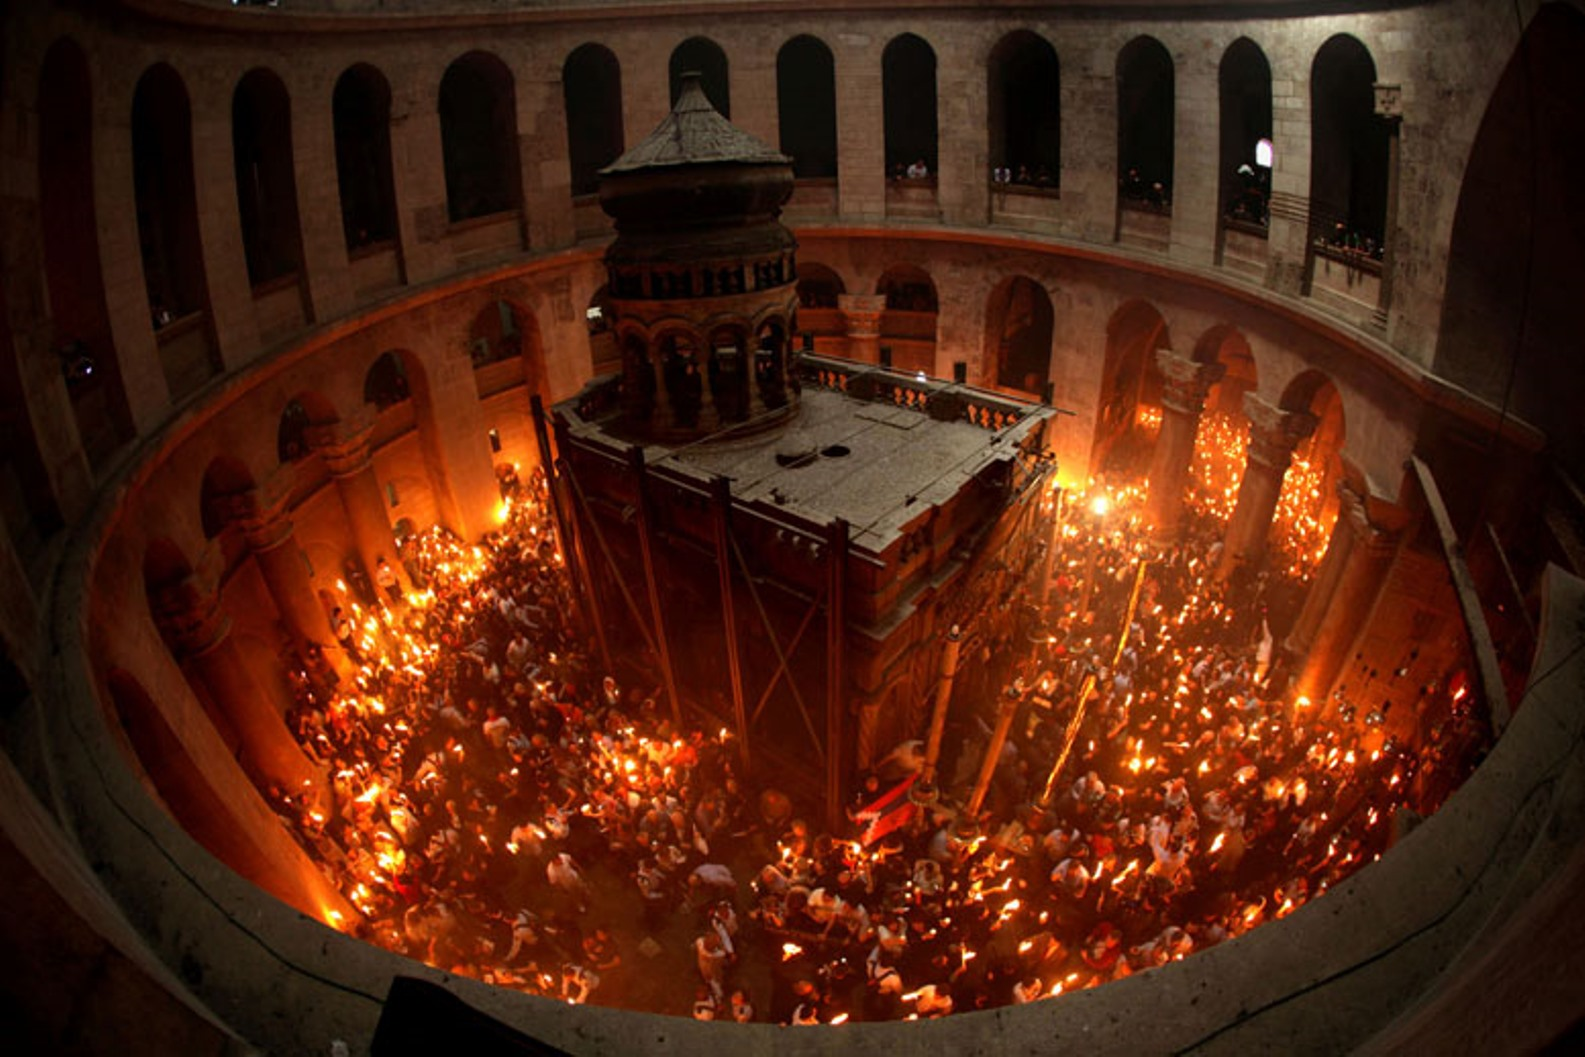 Christian Orthodox worshippers celebrating the Ceremony of the Holy Fire at the Church of the Holy Sepulchre in Jerusalem. Photo by Gali Tibbon